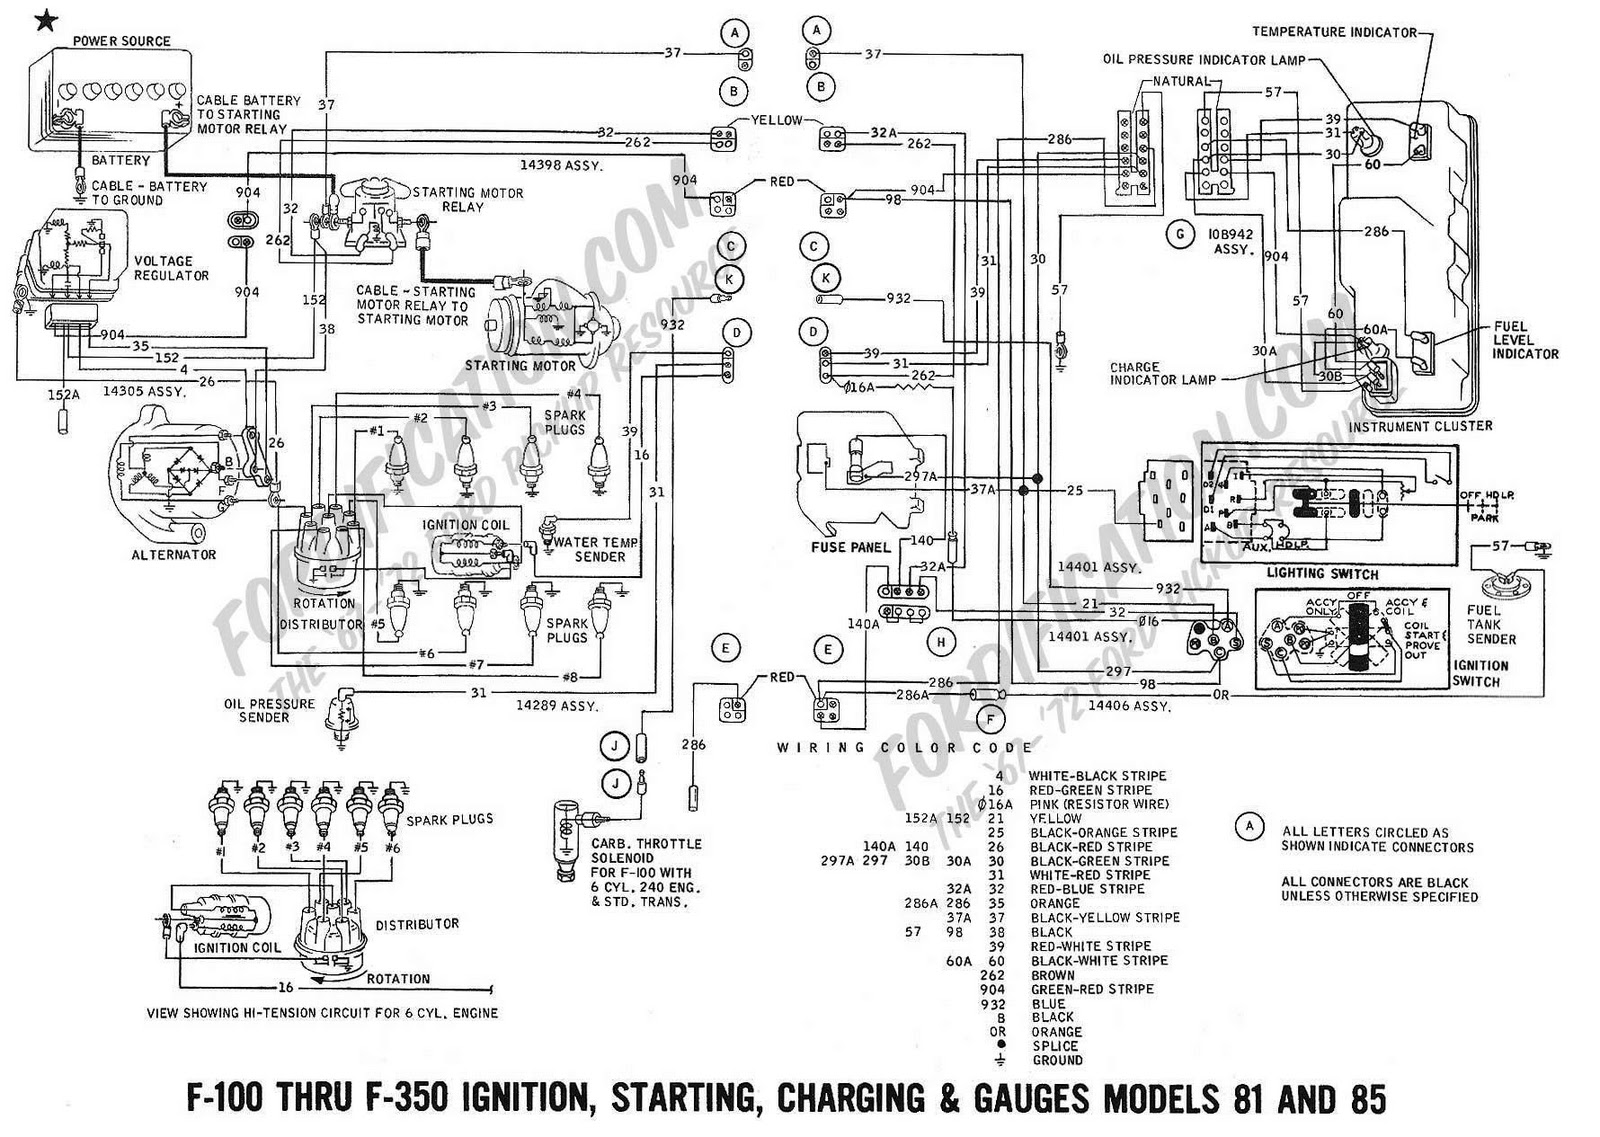 1969 Ford F100 F350 Ignition Starting on 1963 ford galaxie wiring diagram